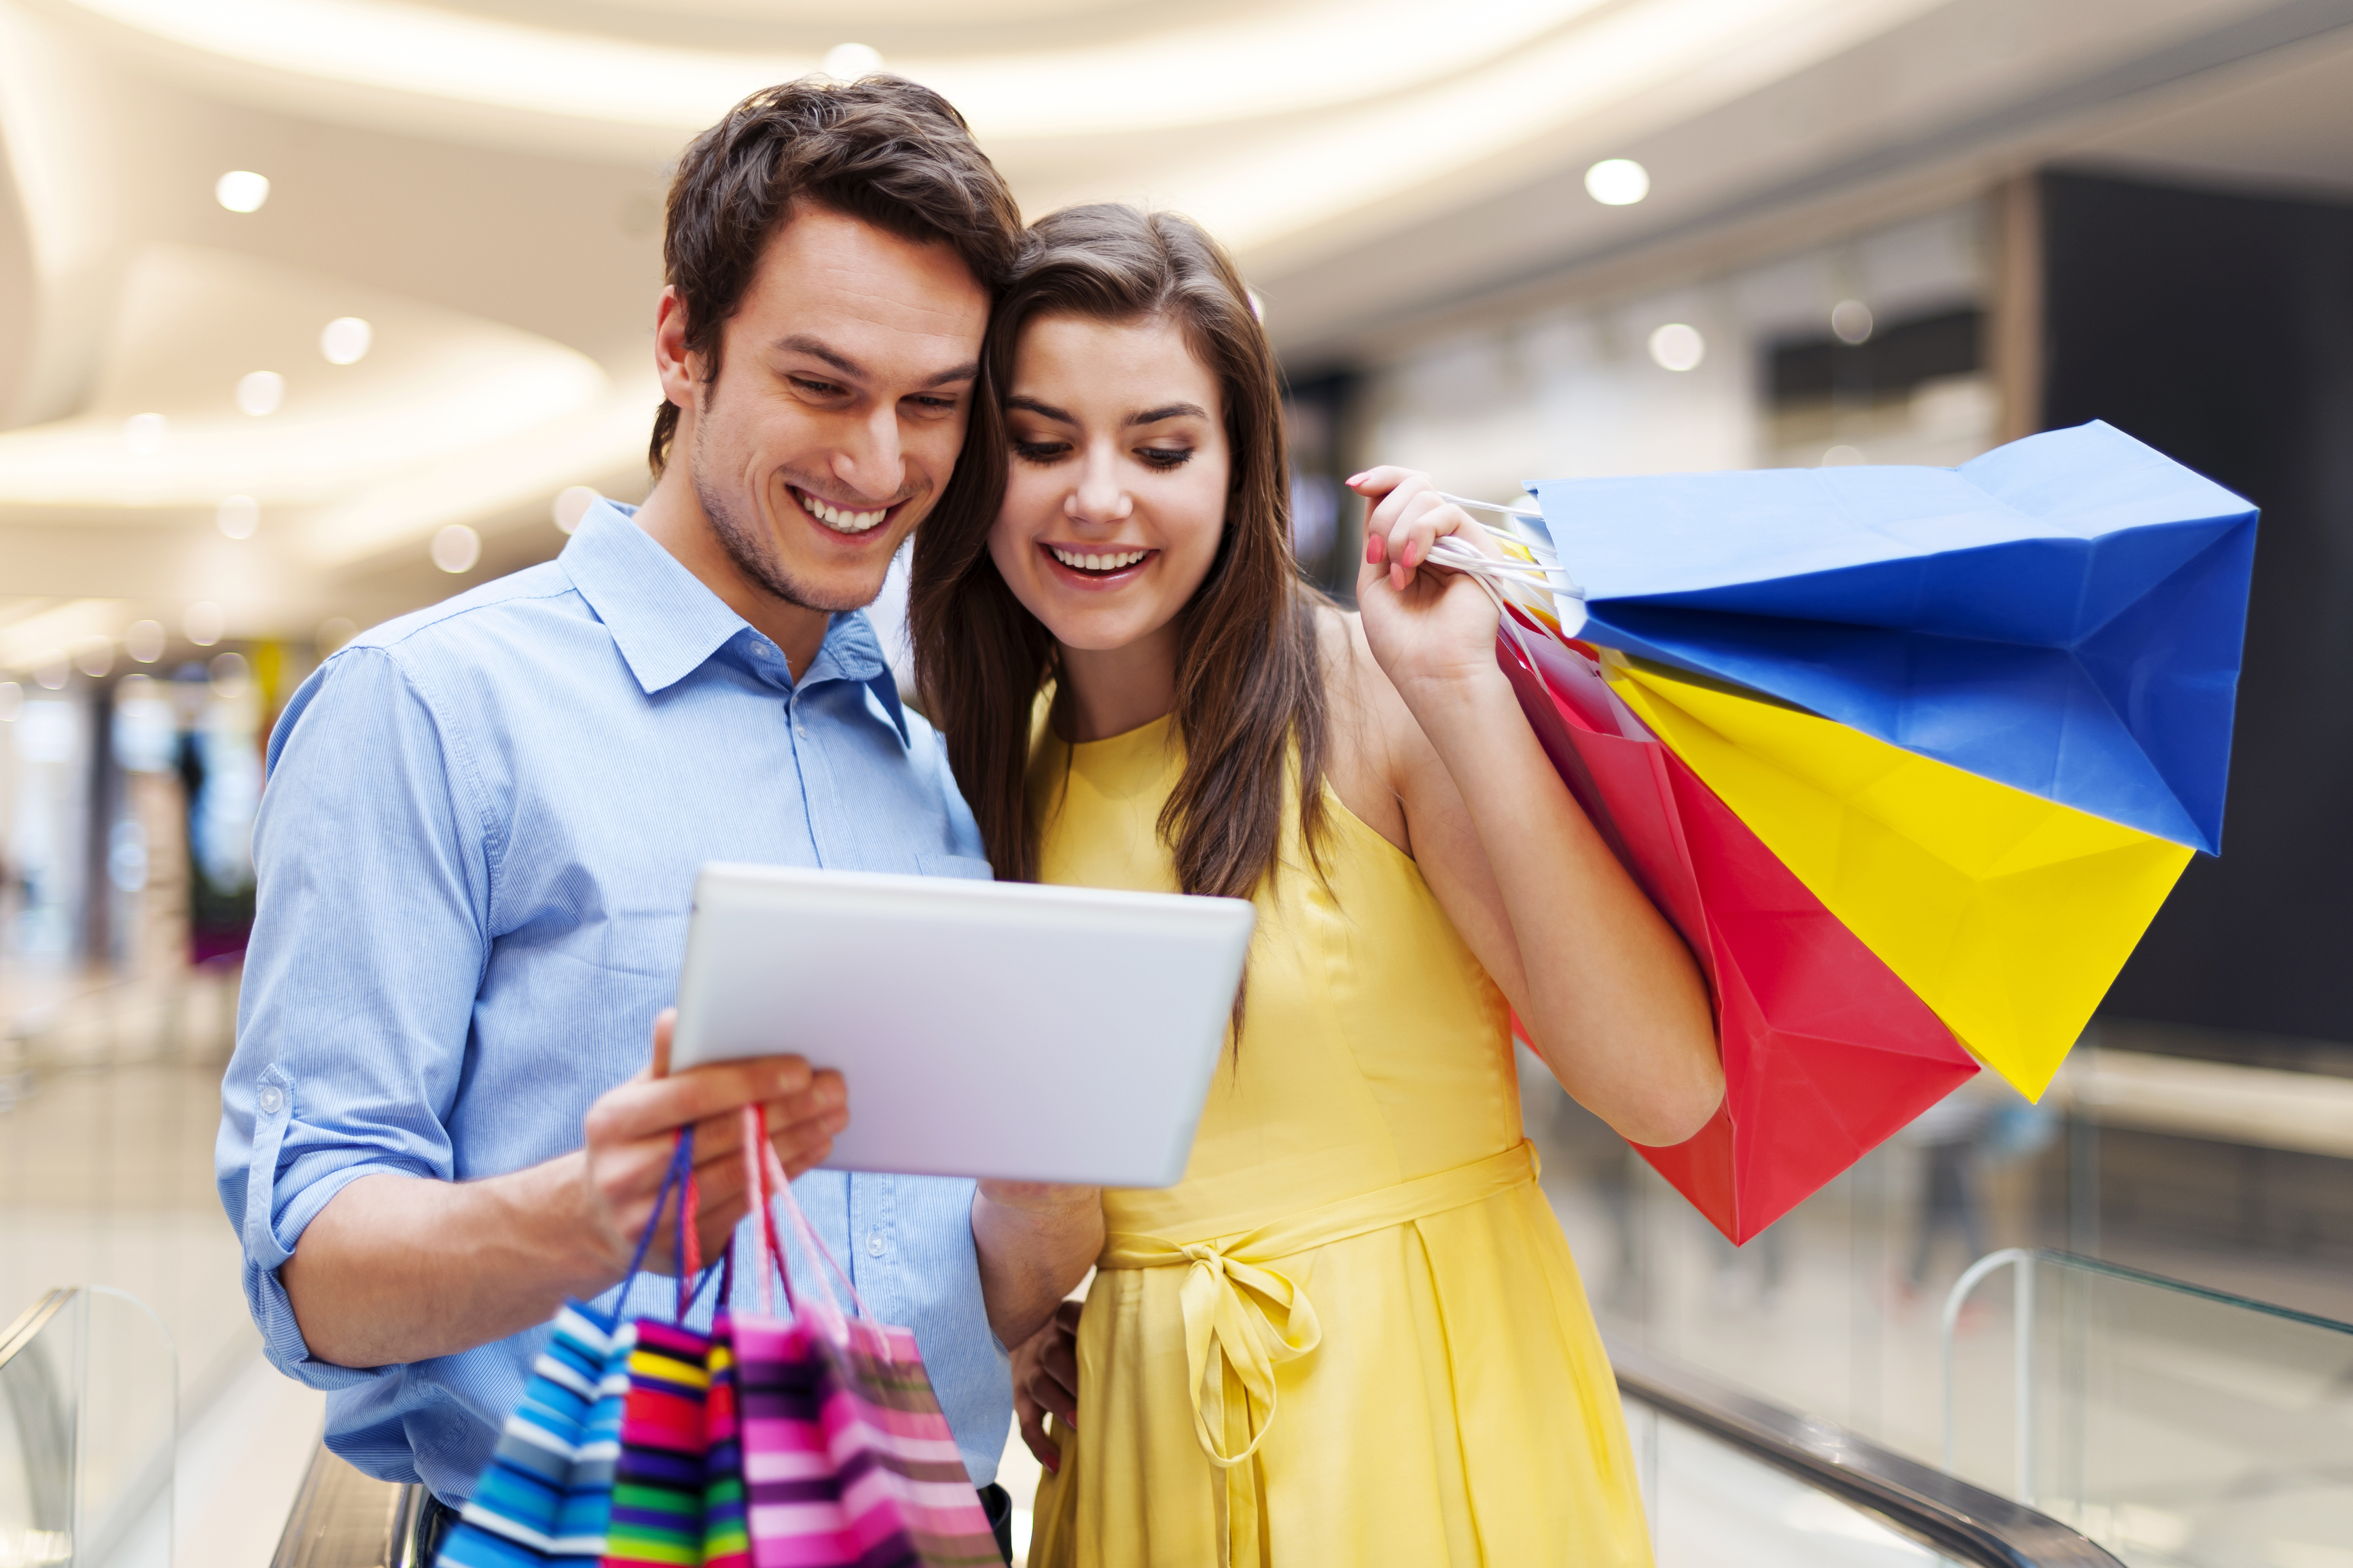 Happy couple using s digital tablet in the shopping mall